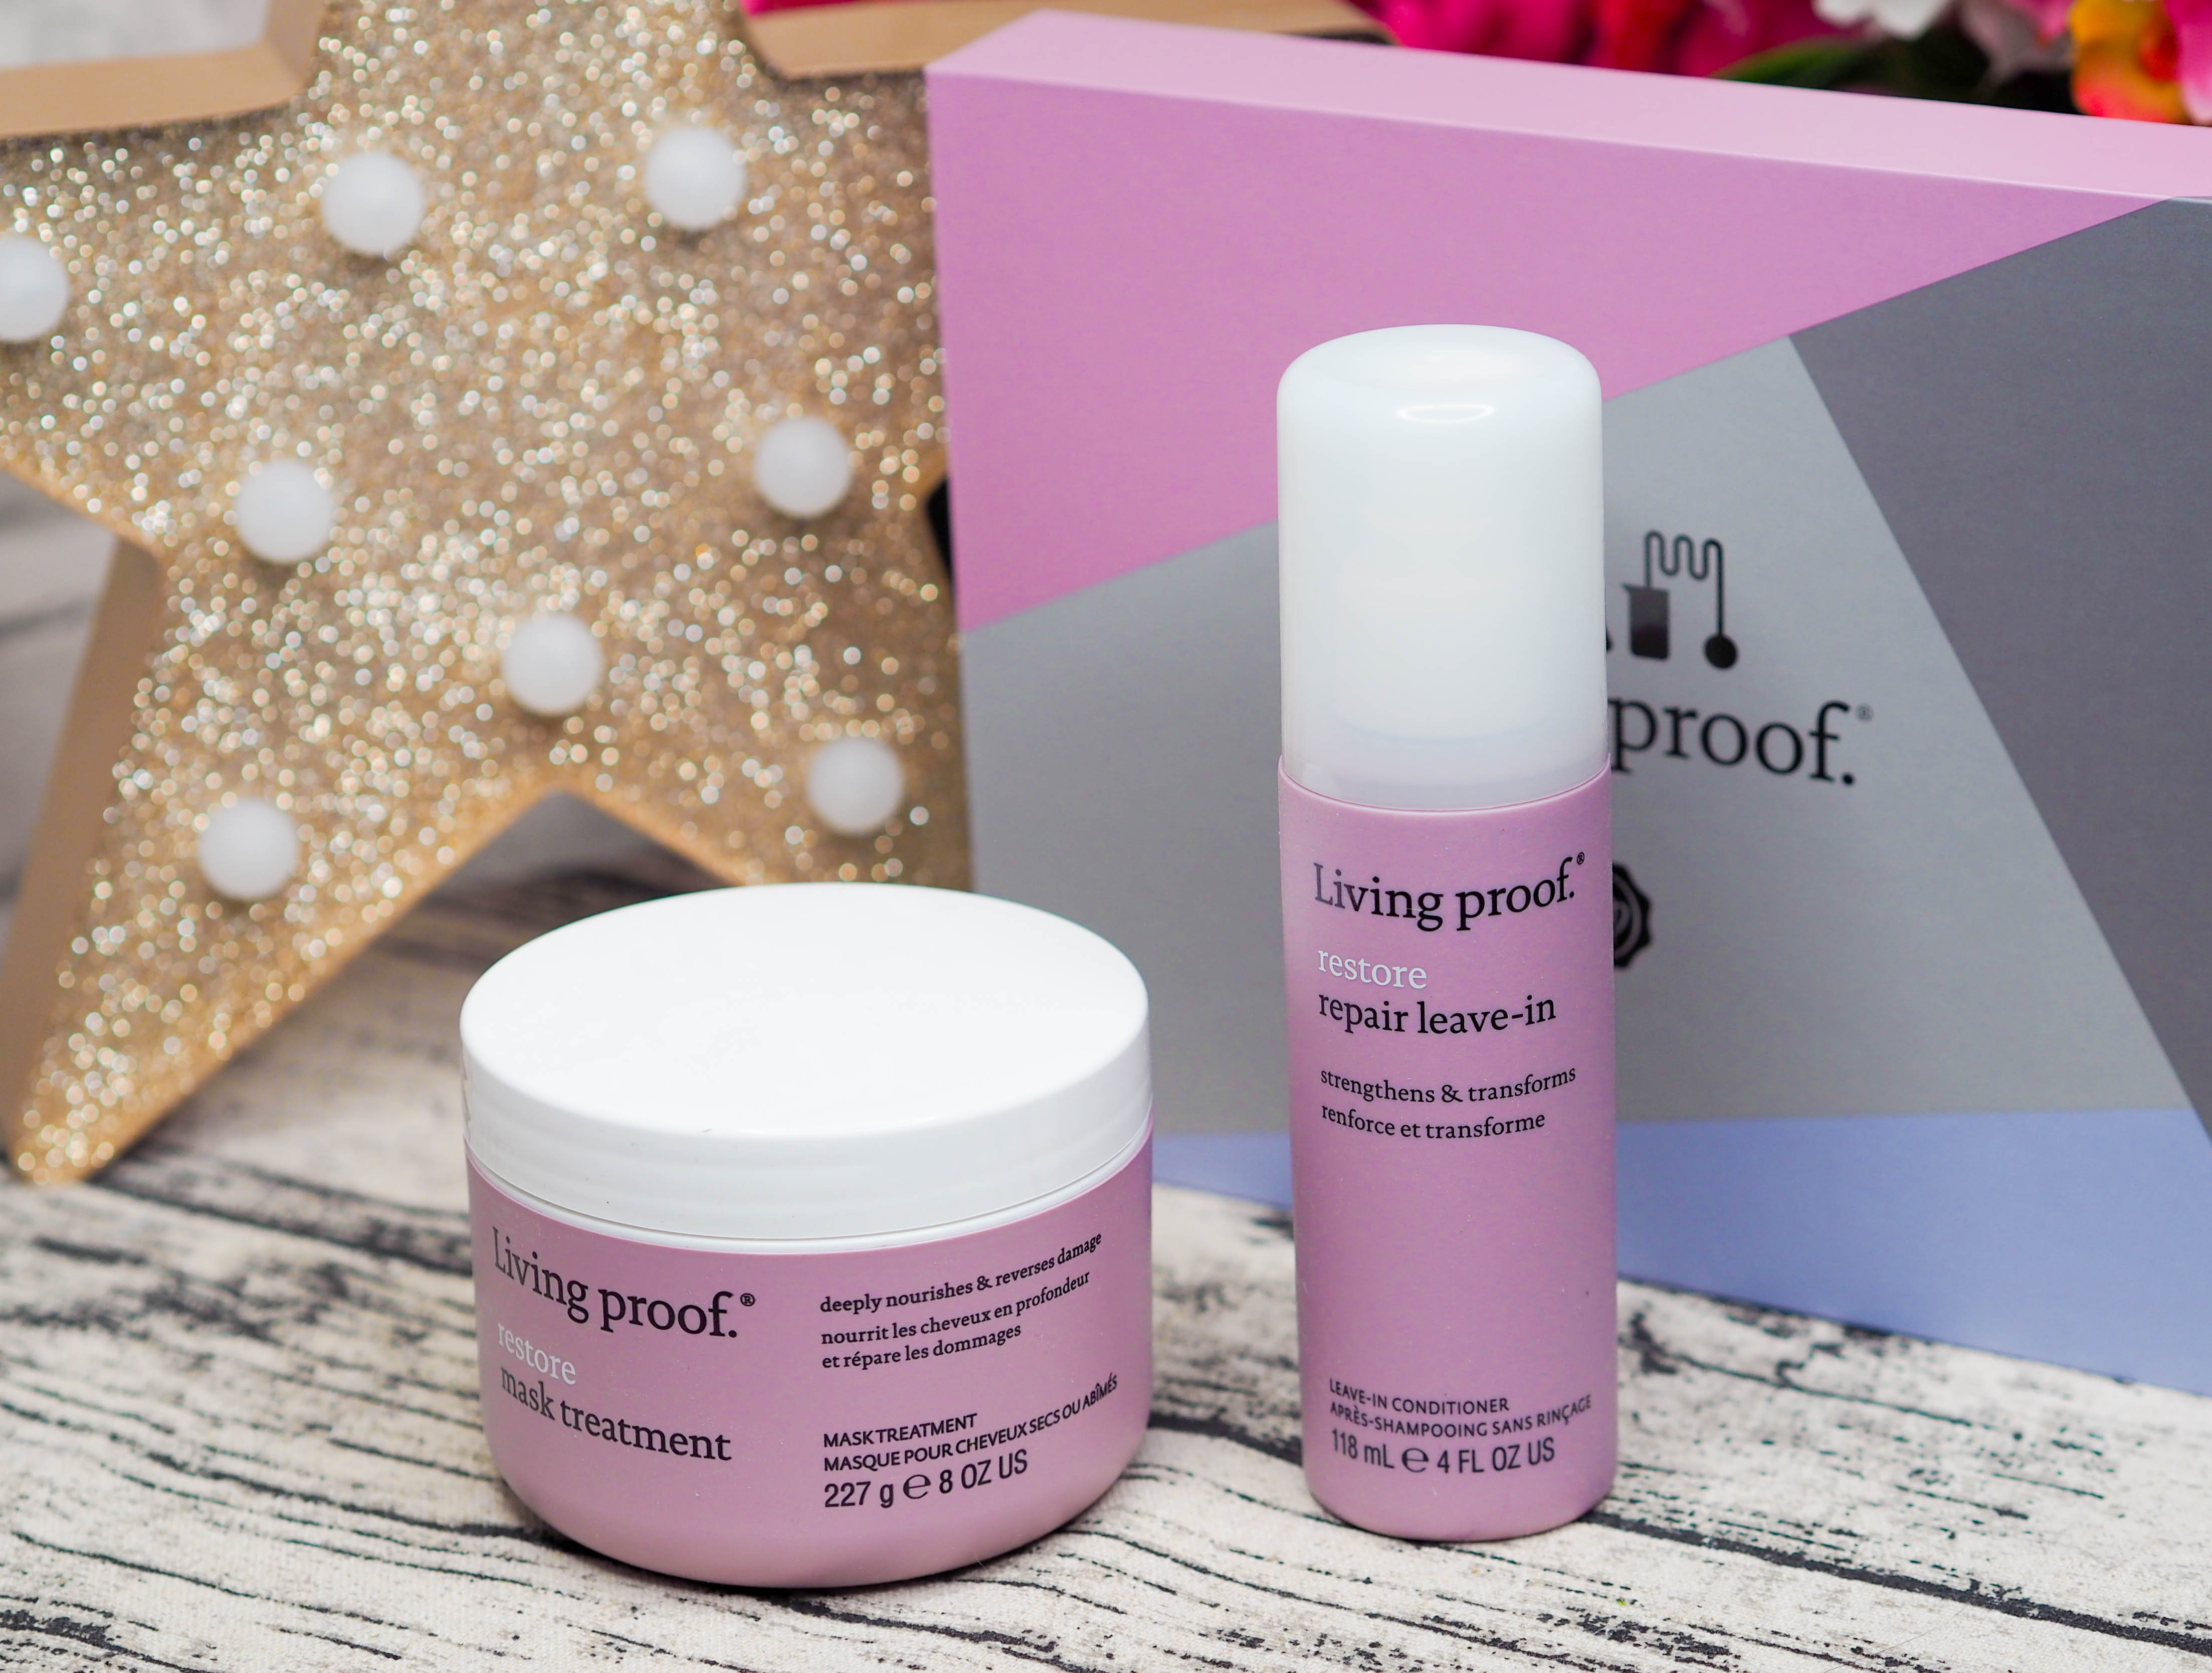 Glossybox x Living Proof Limited Edition Box